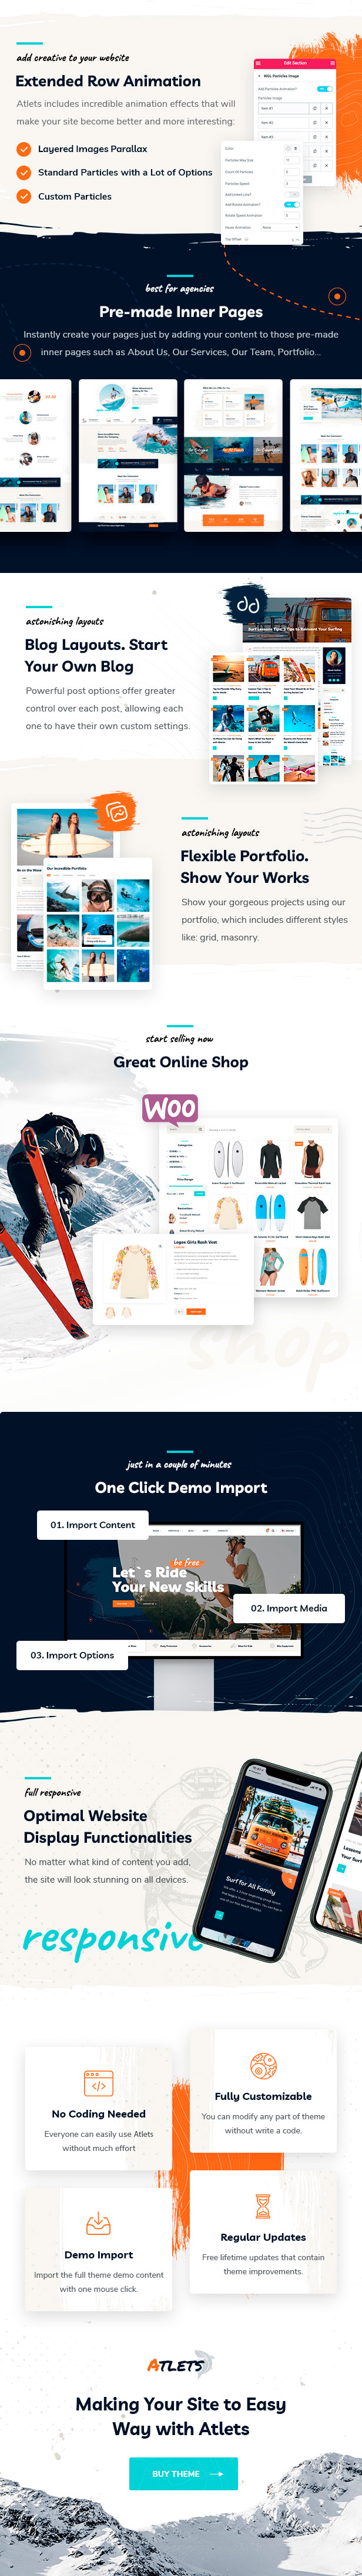 Atlets - Extreme and Outdoors WordPress Theme - 2